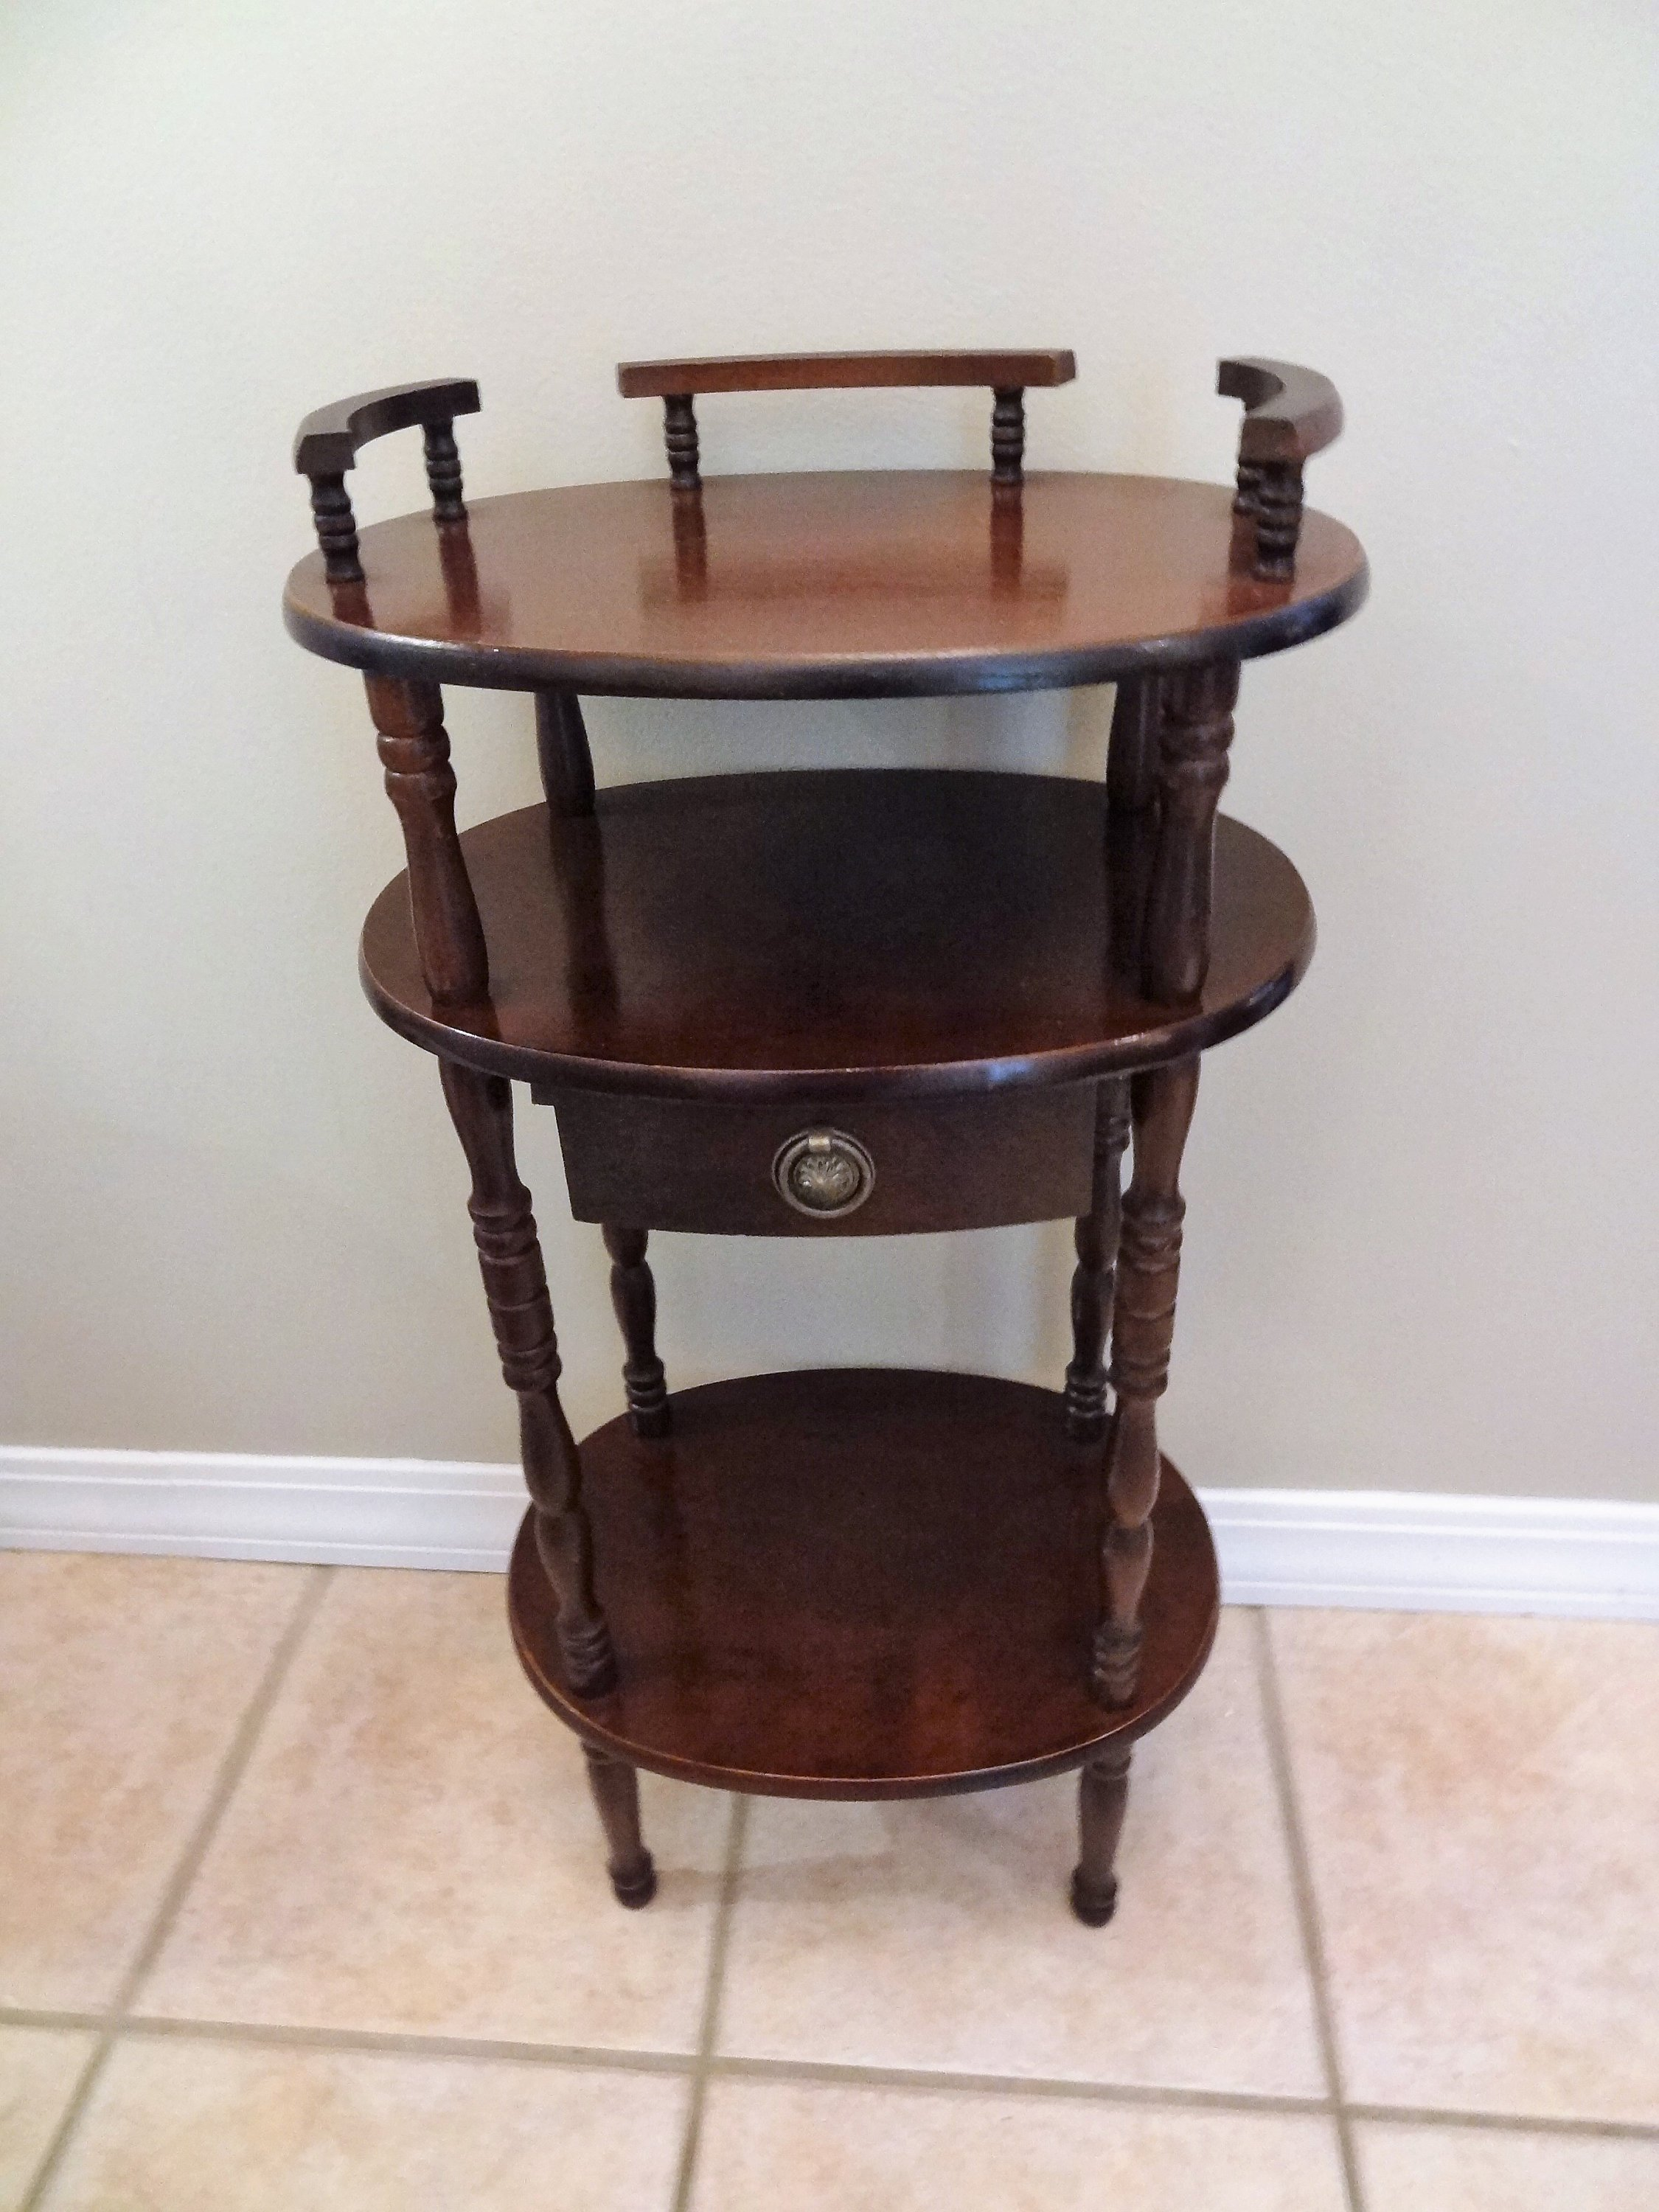 vintage wooden side table shelf old telephone etsy fullxfull wood accent target bedside lamps diy end plans drum battery operated wicker glass nesting tables clermont furniture